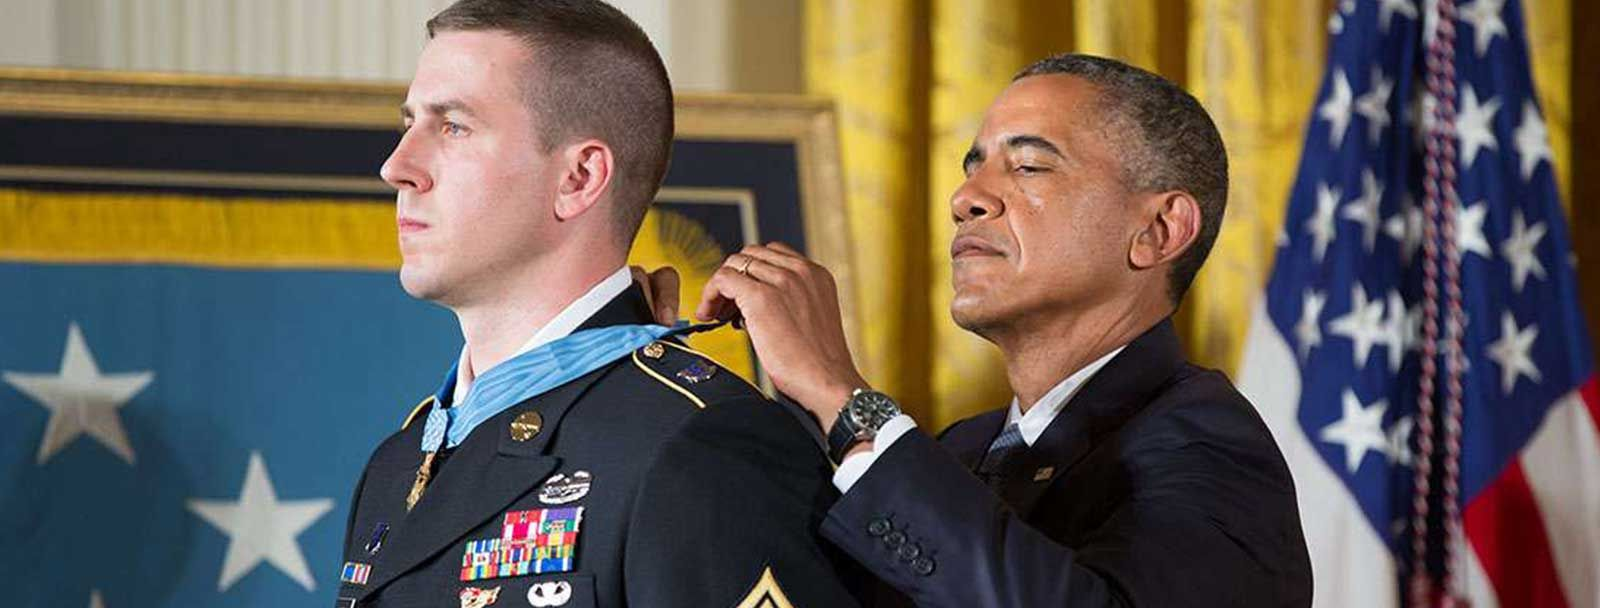 UNH alumnus and Medal of Honor recipient Ryan Pitts